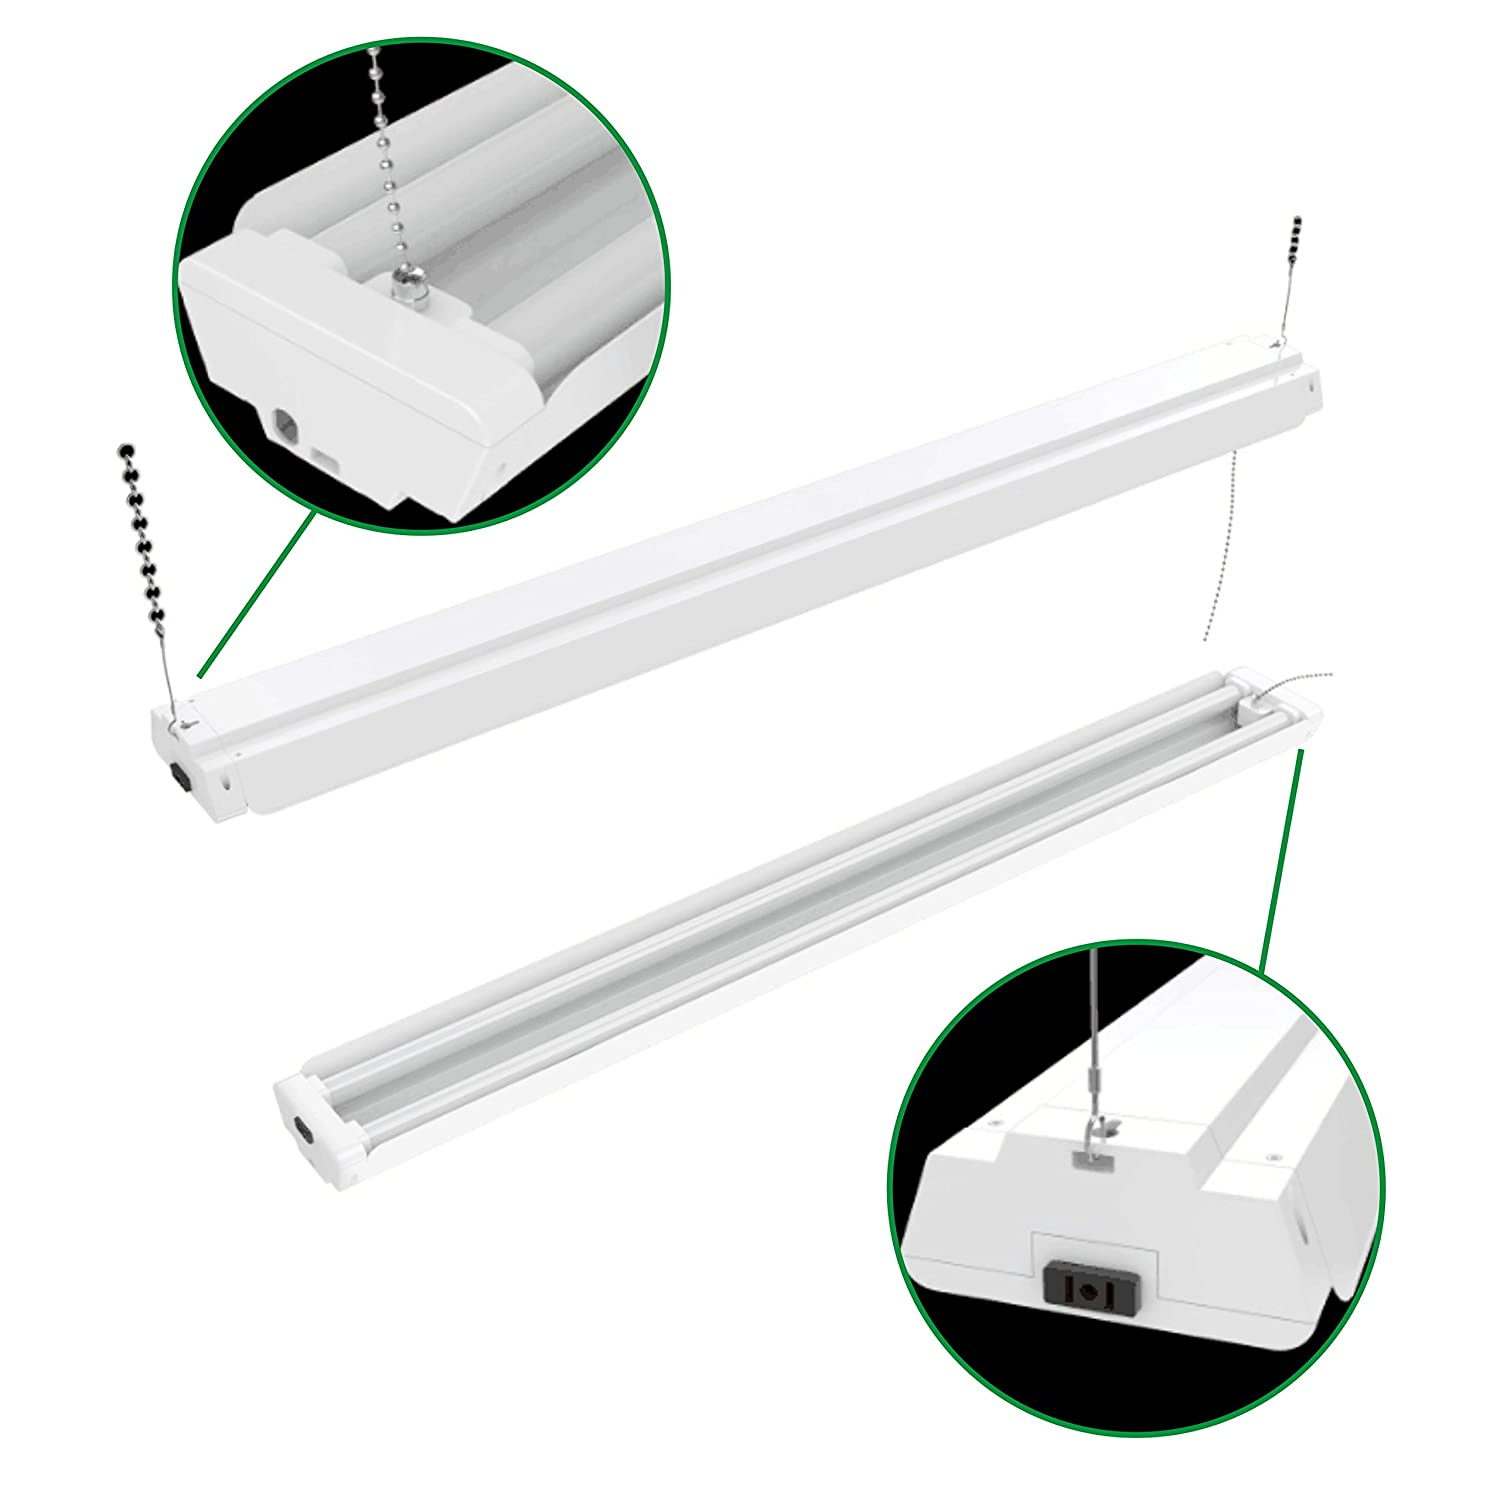 10 Best LED Garage Lights Review And Comparison 2018